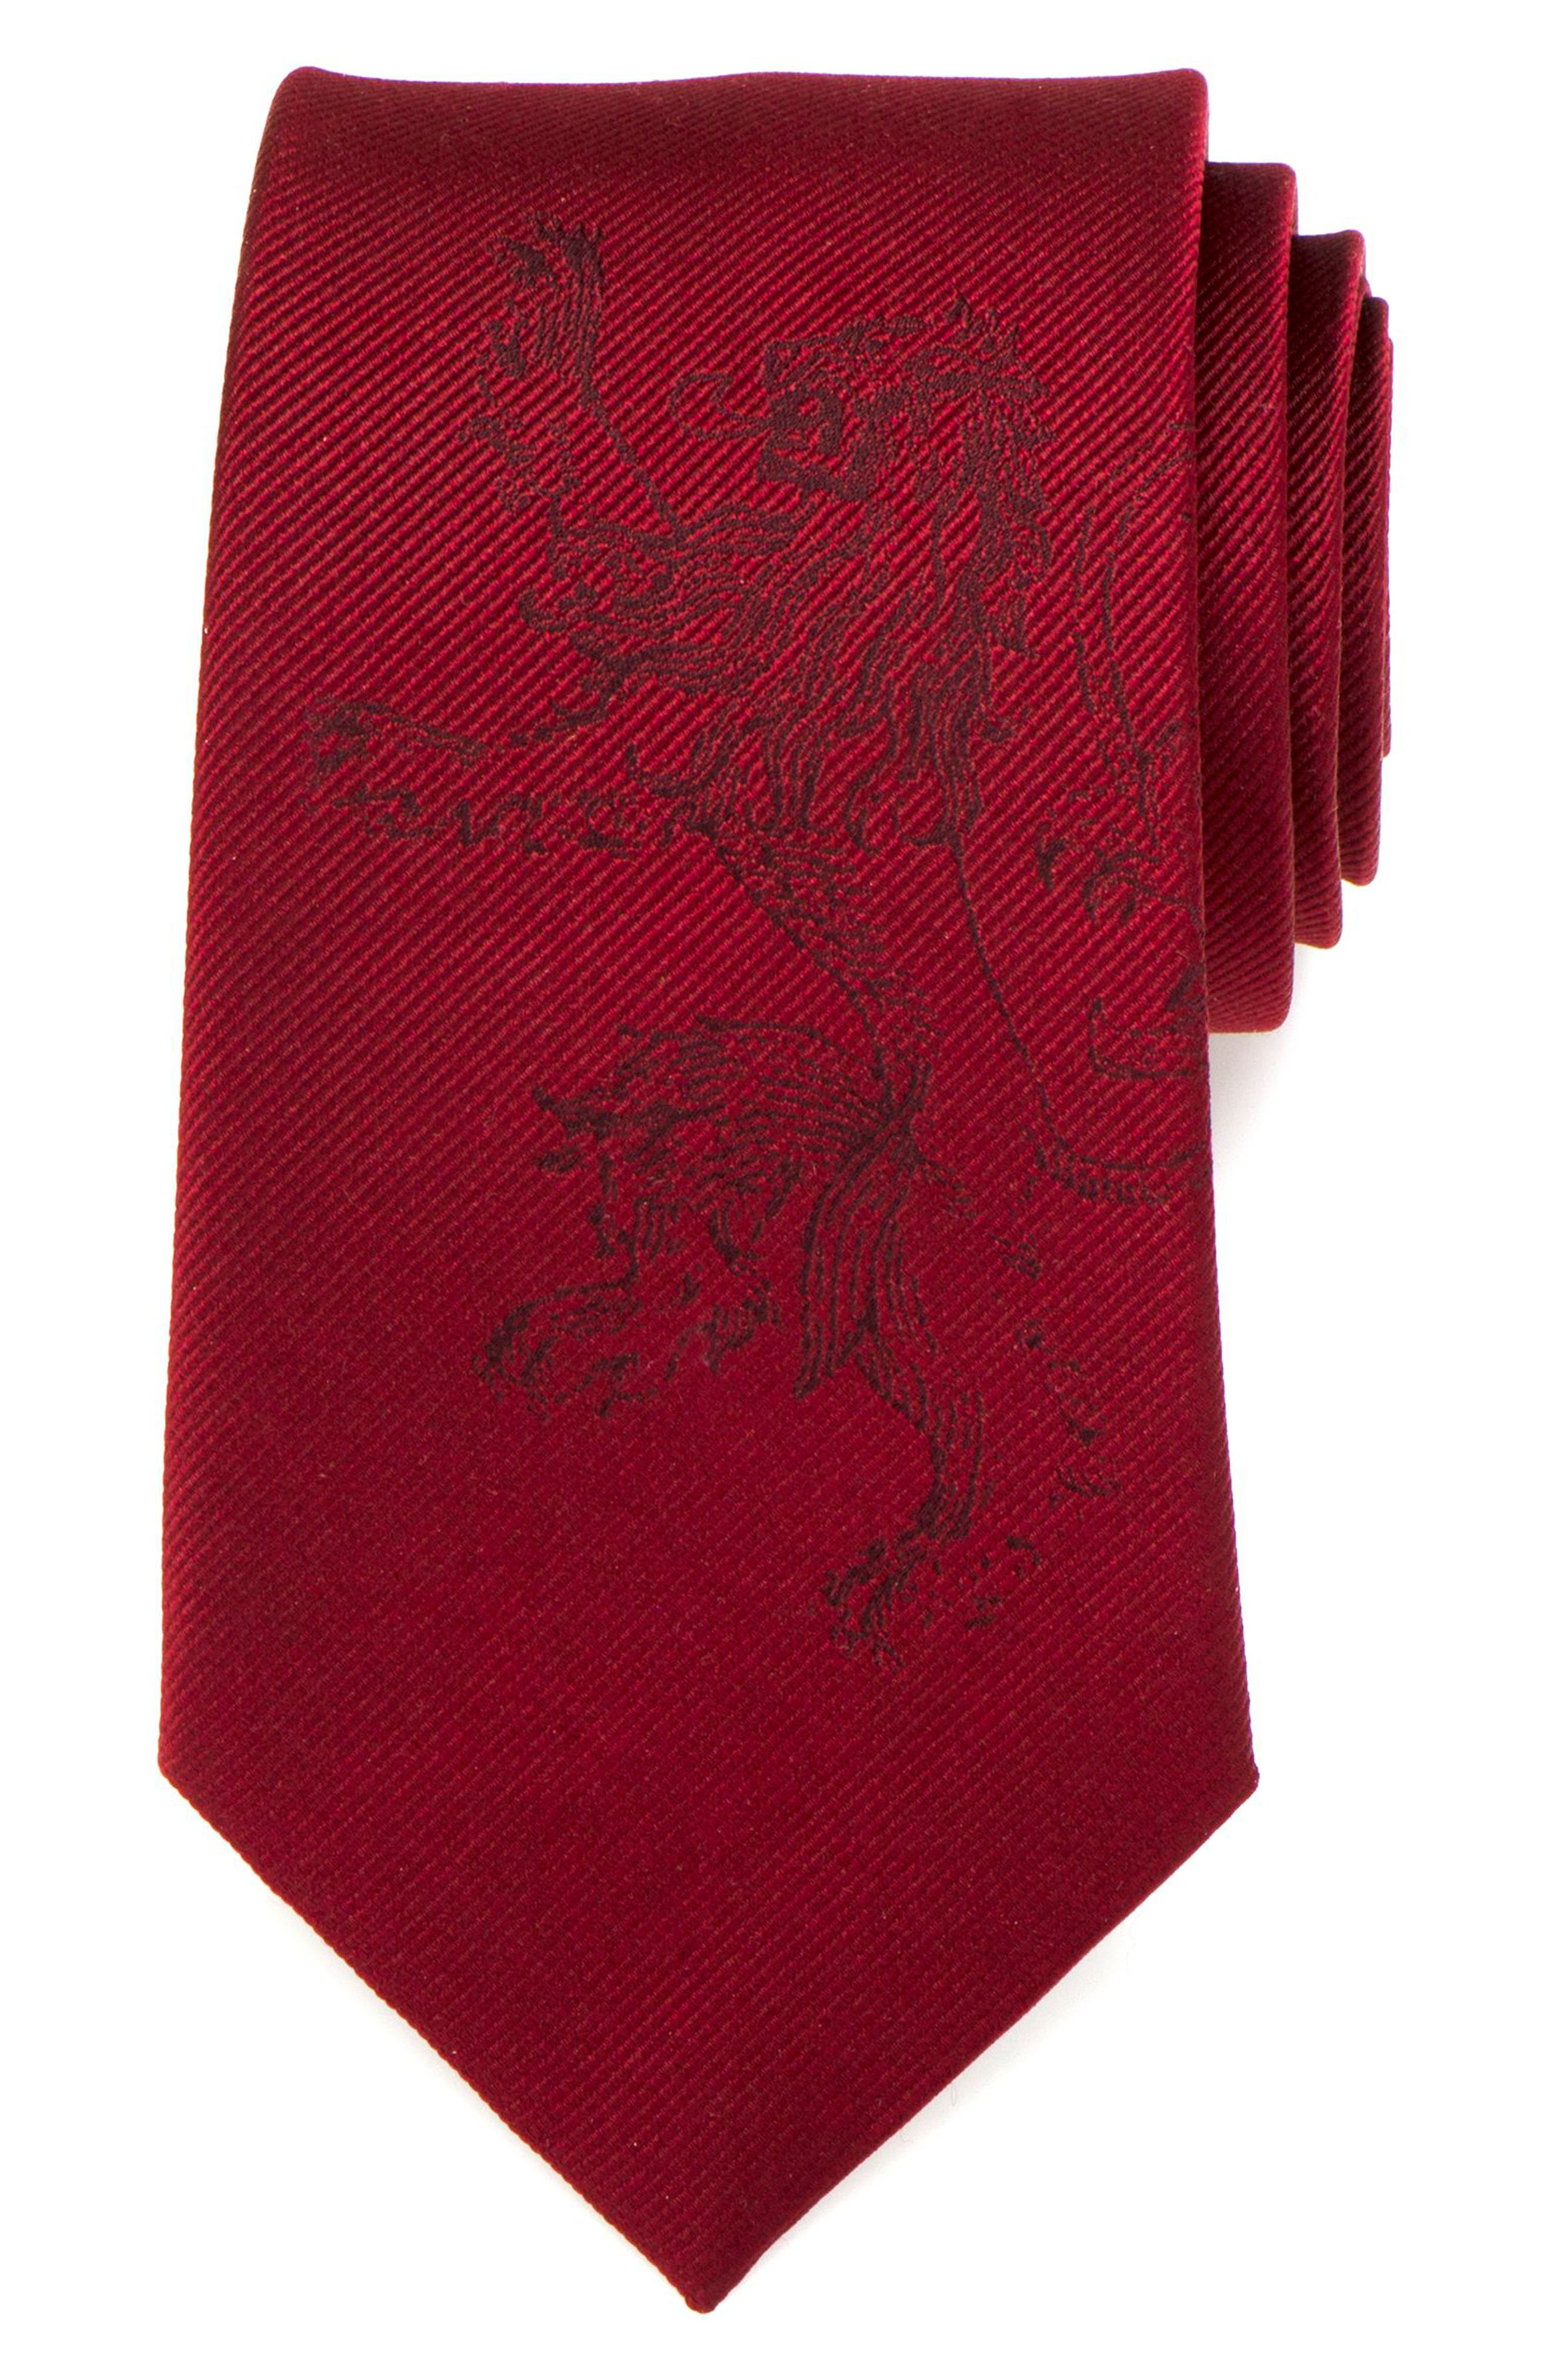 Game of Thrones Lannister Silk Tie,                             Alternate thumbnail 3, color,                             Red